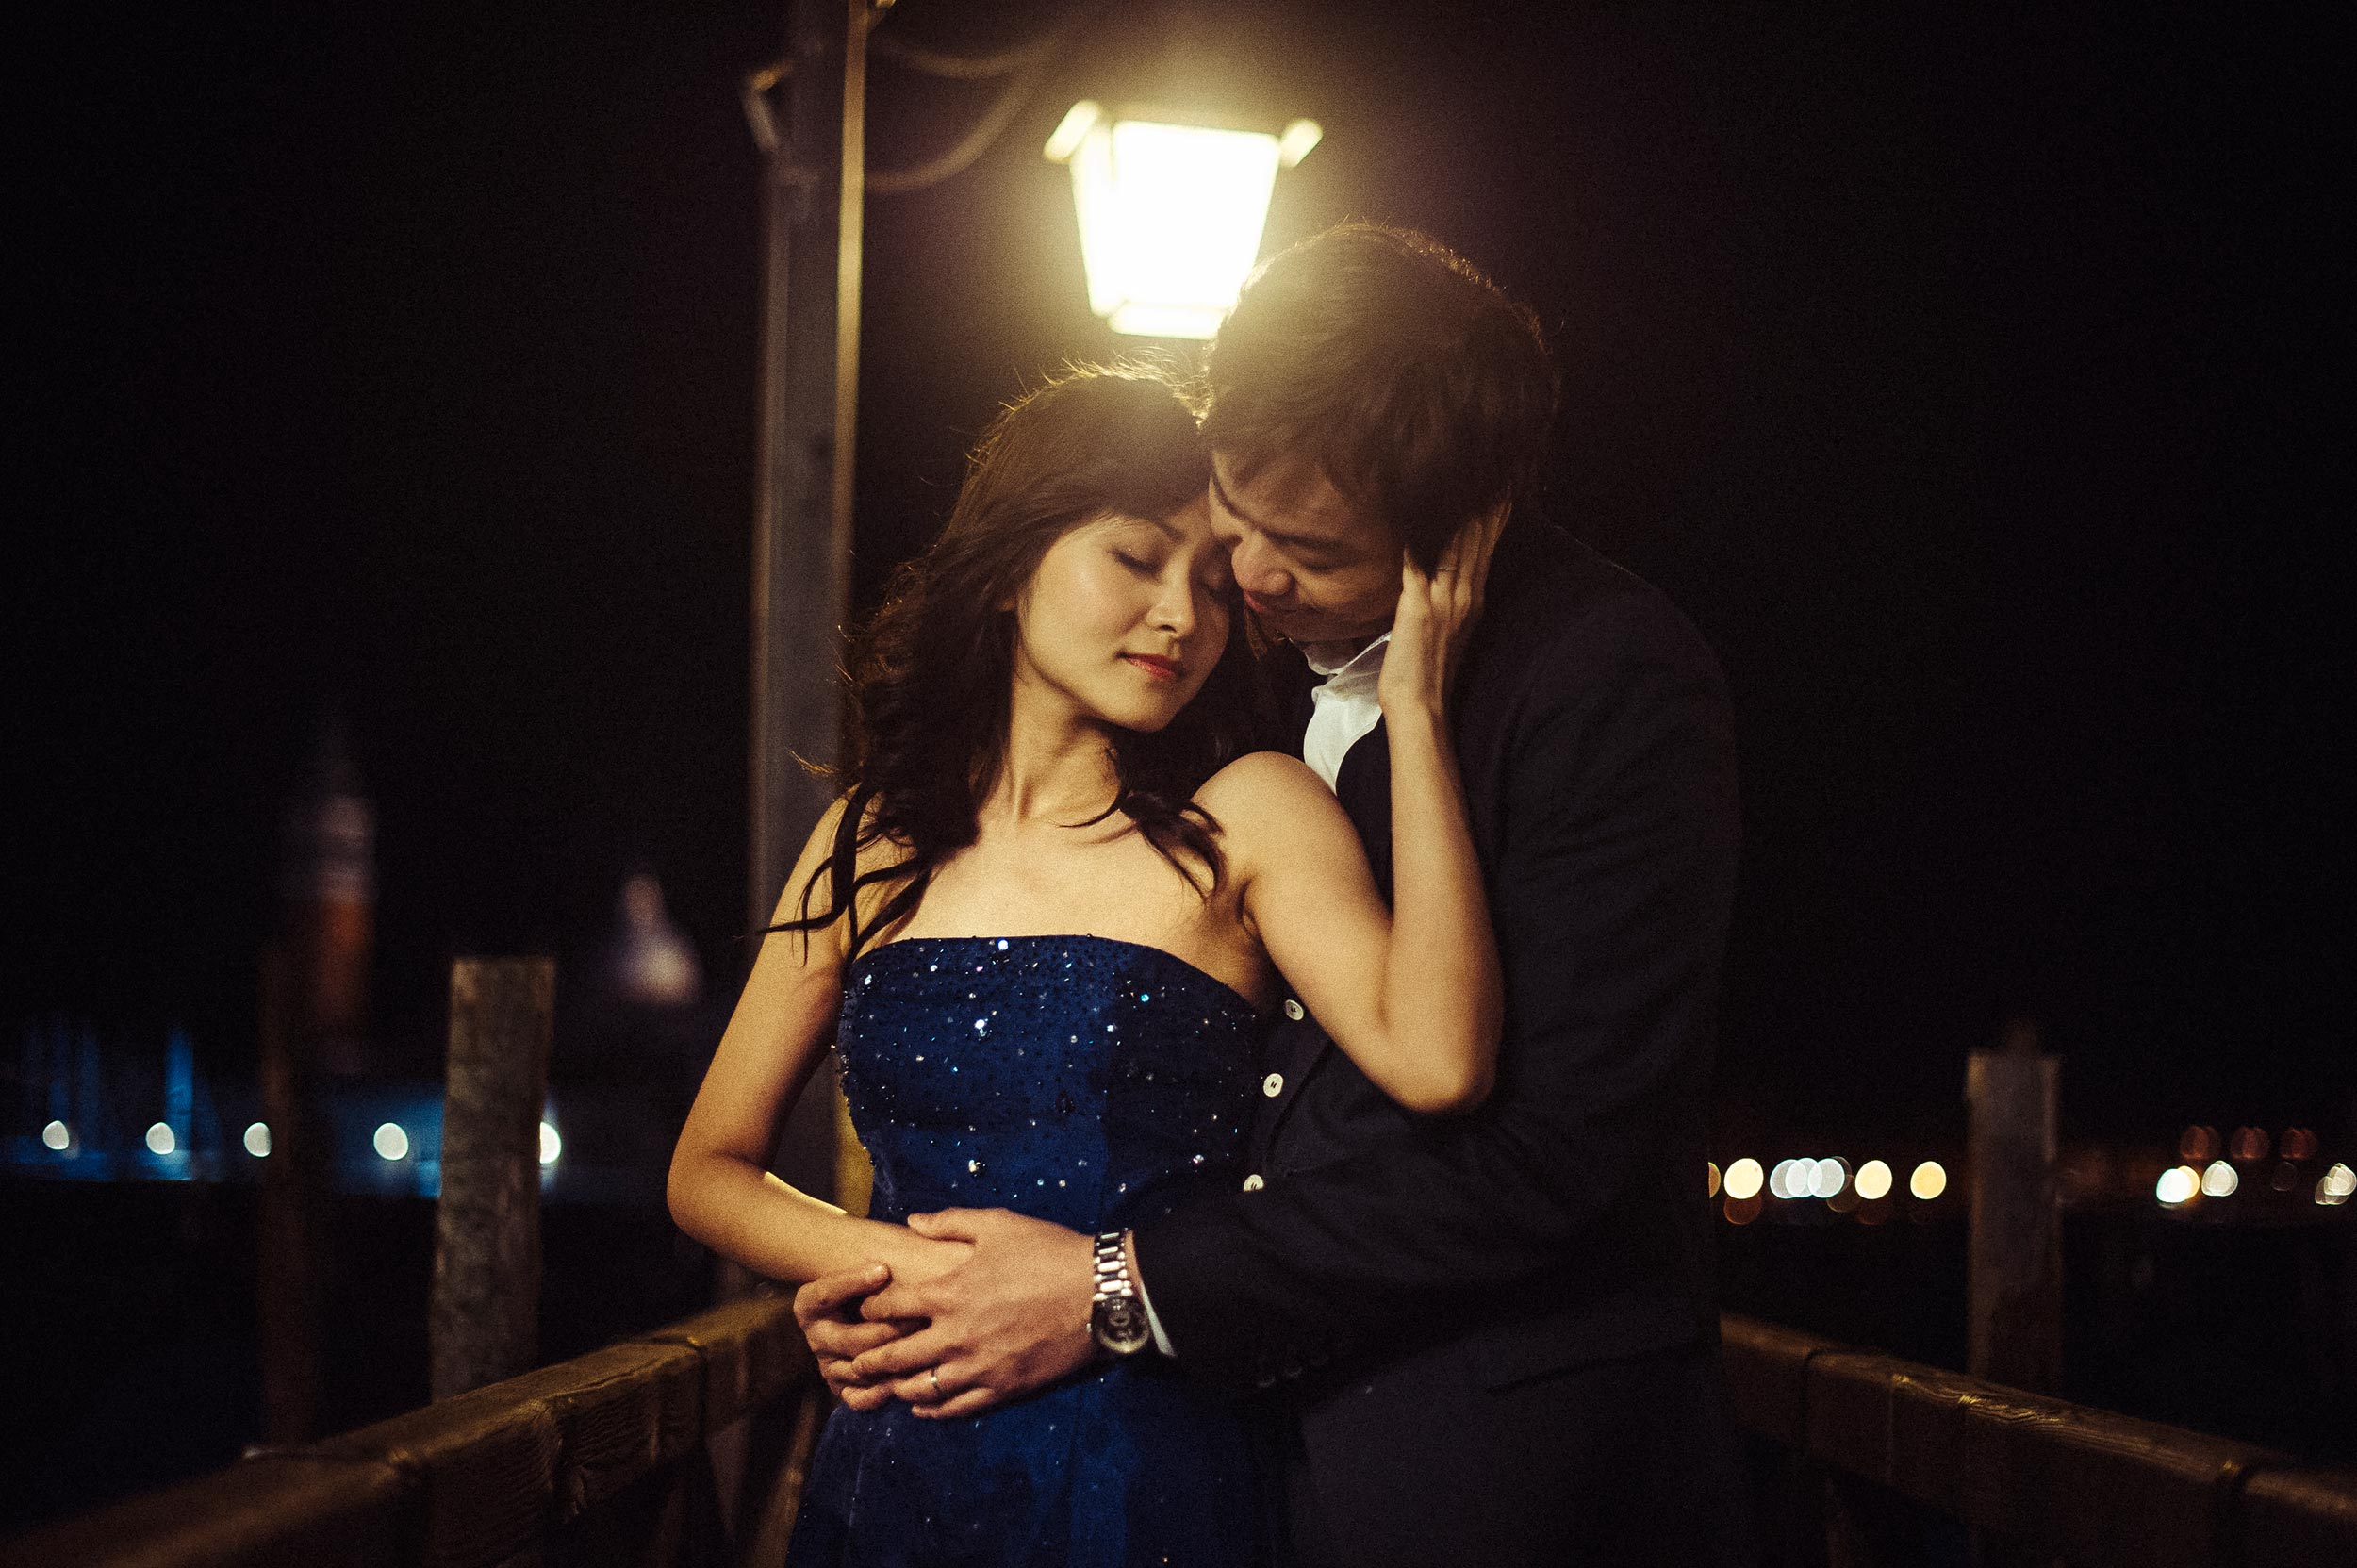 venice-chinese-engagement-shooting-at-night-under-the-lantern.jpg